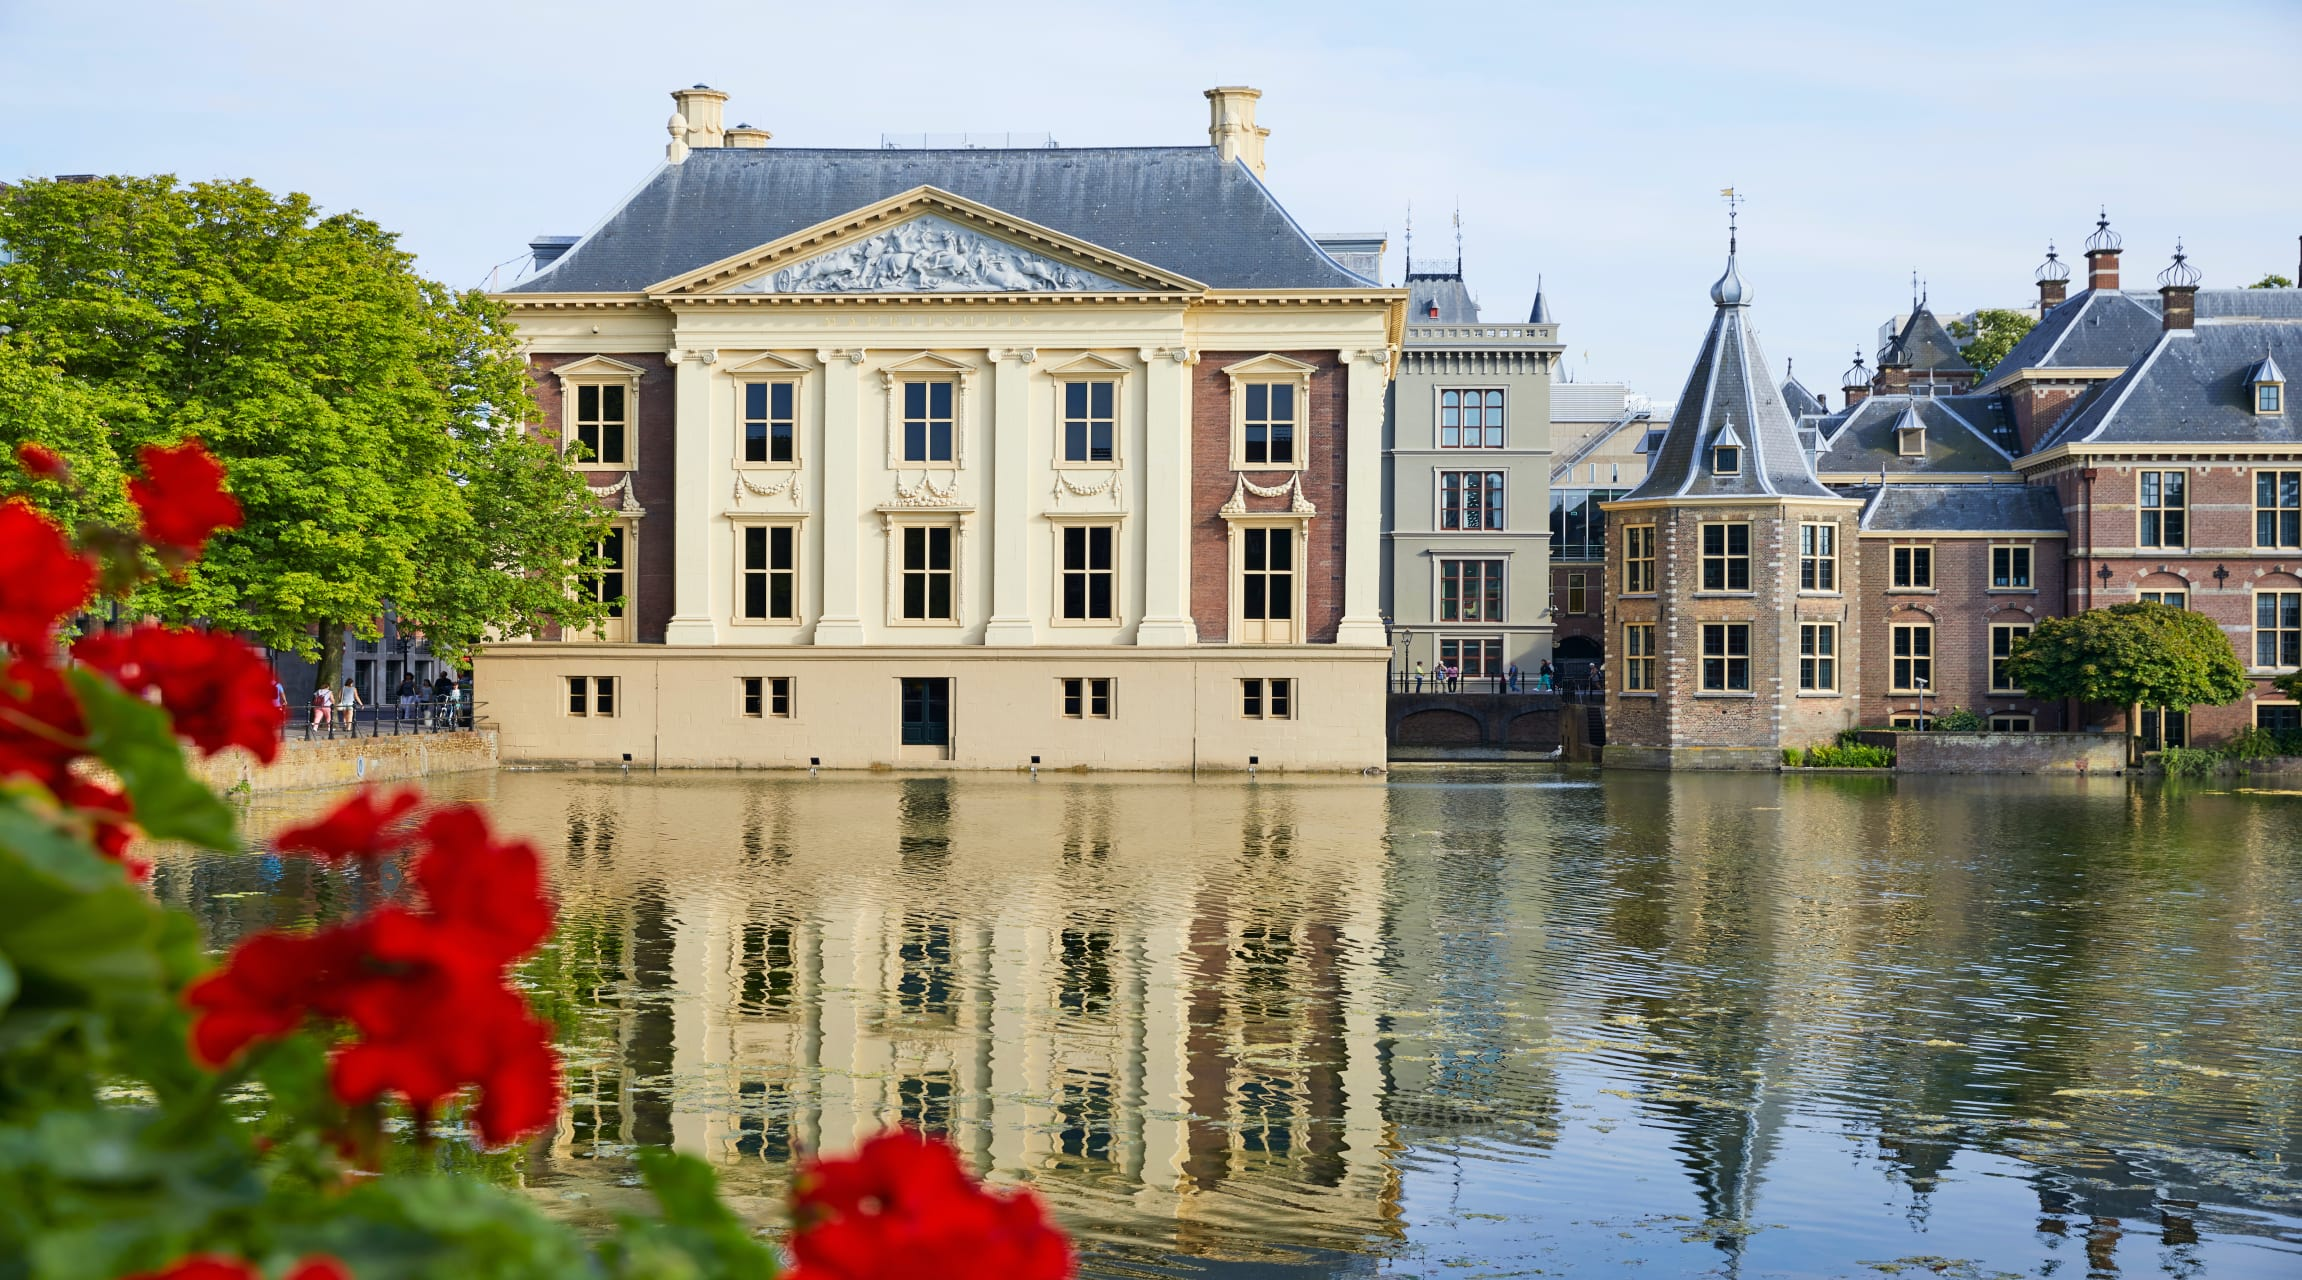 The Hague - Gems of the Mauritshuis